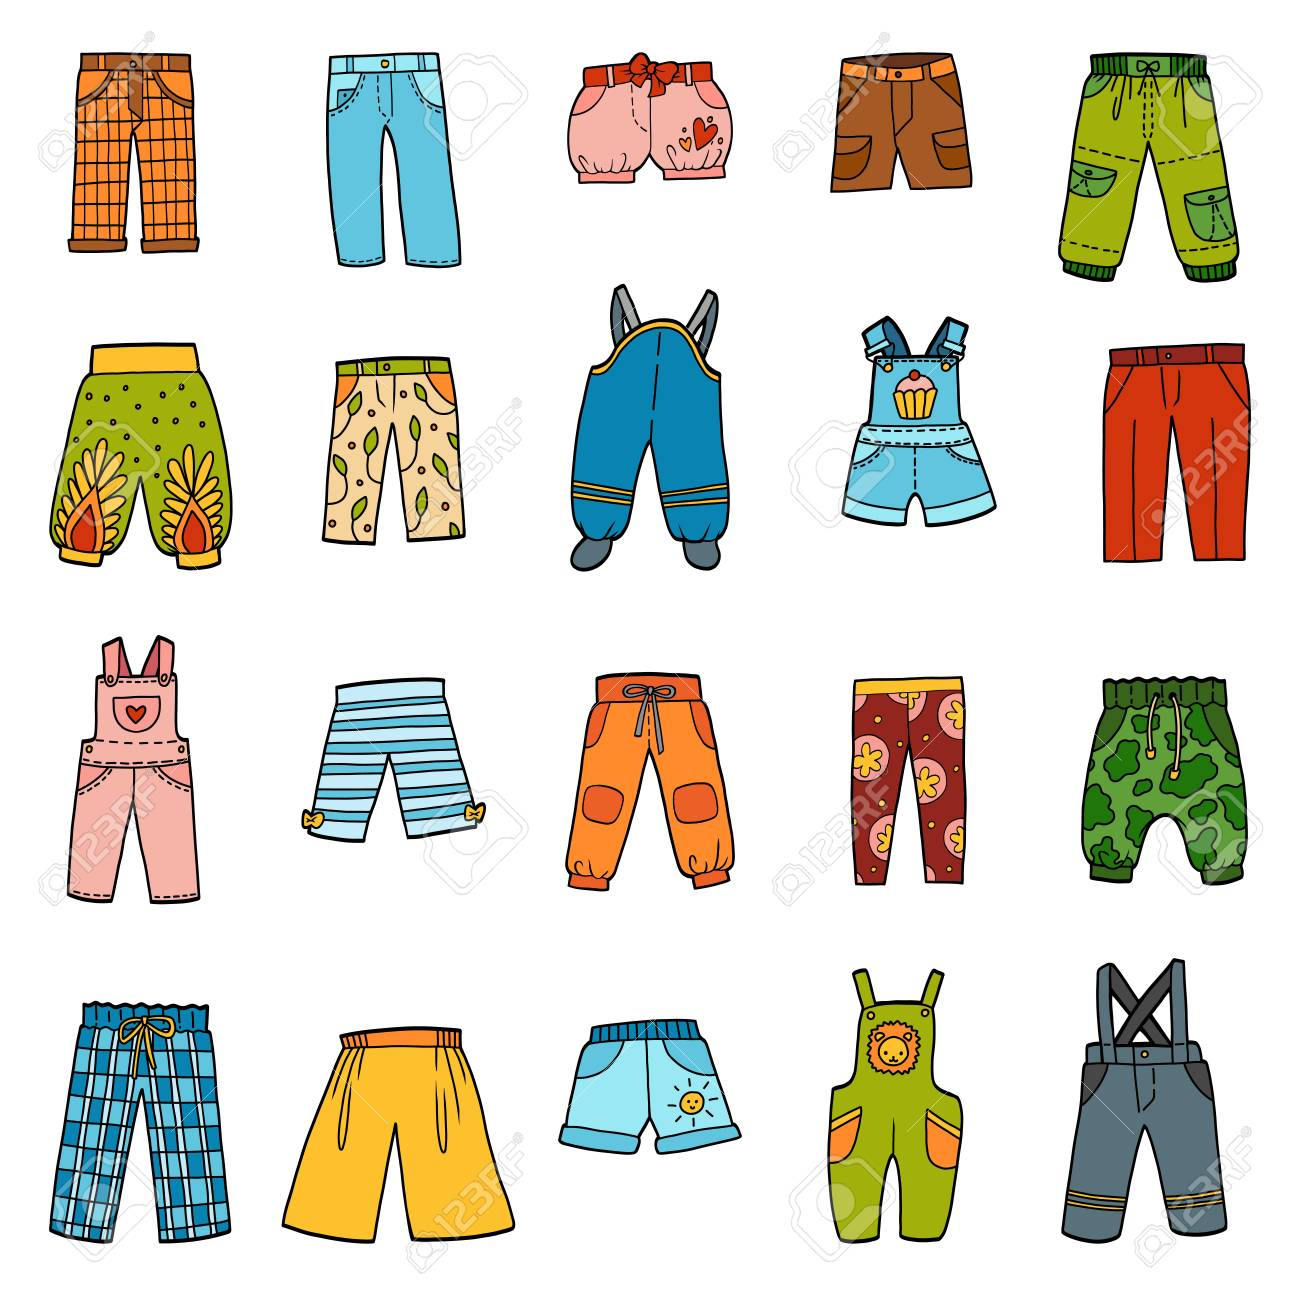 Vector set of pants, color collection of cartoon trousers and overalls - 122793097